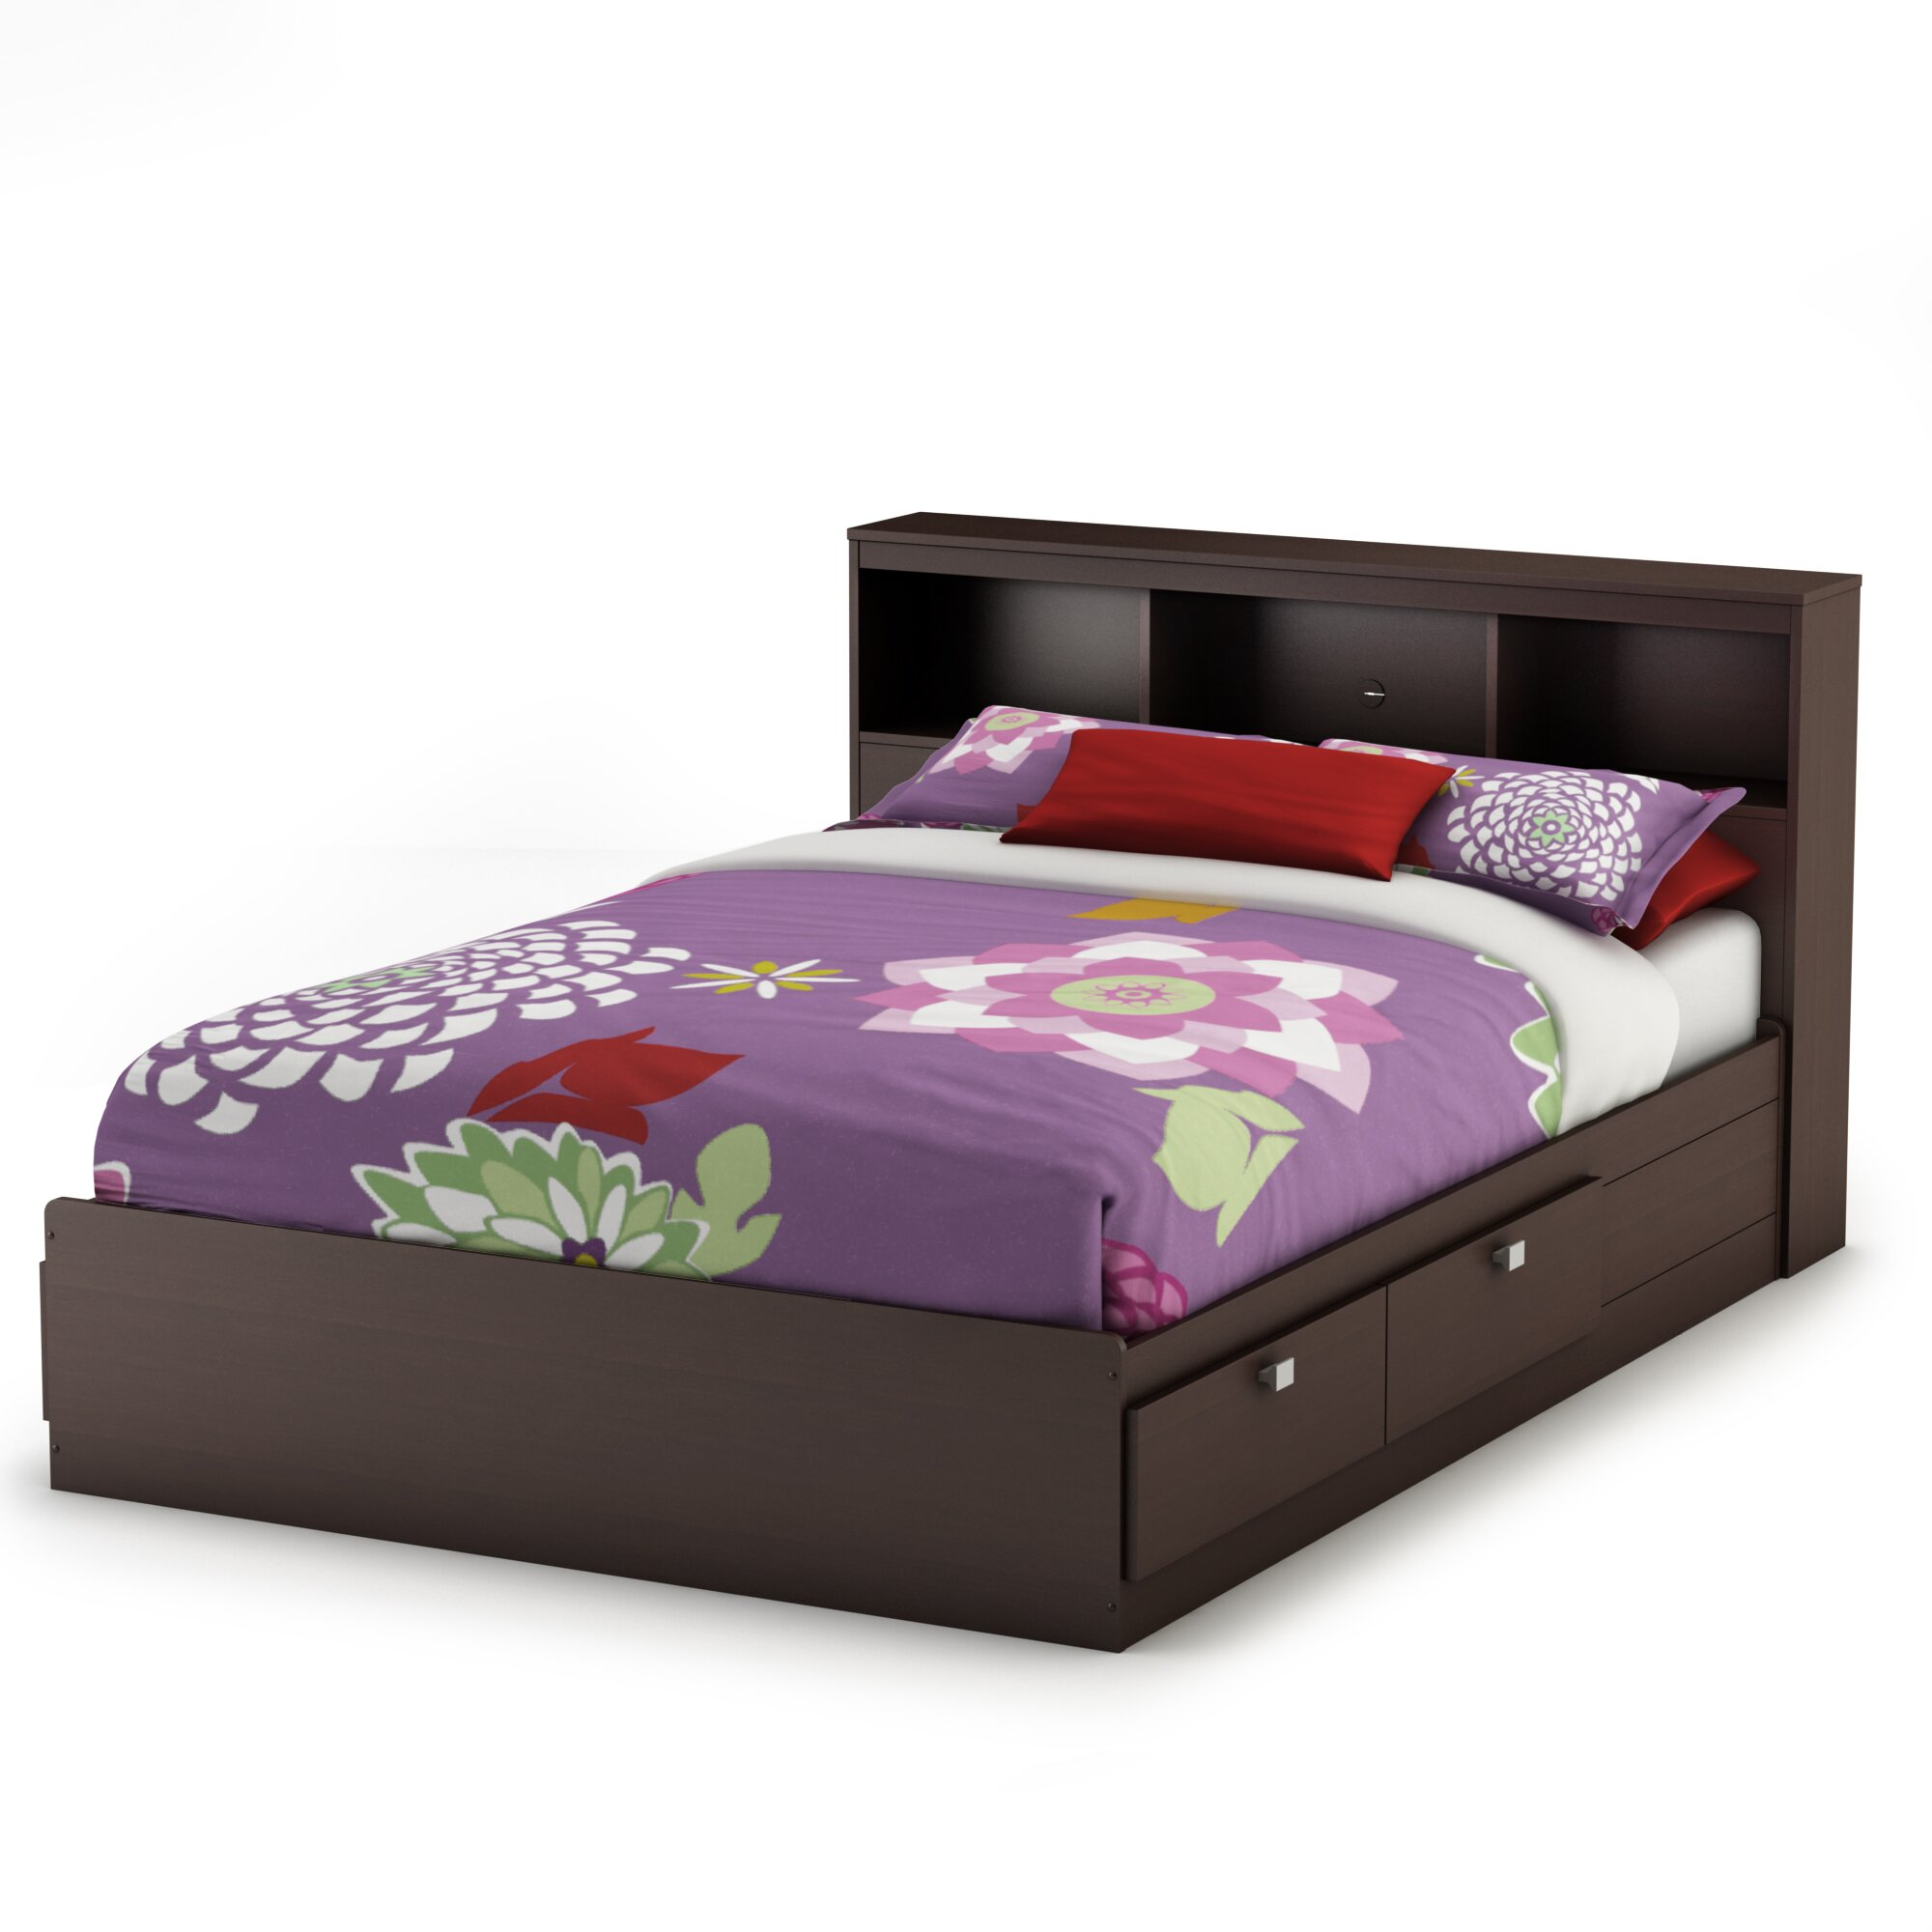 South Shore Bedroom Furniture South Shore Karma Mates Bed With Storage Reviews Wayfair